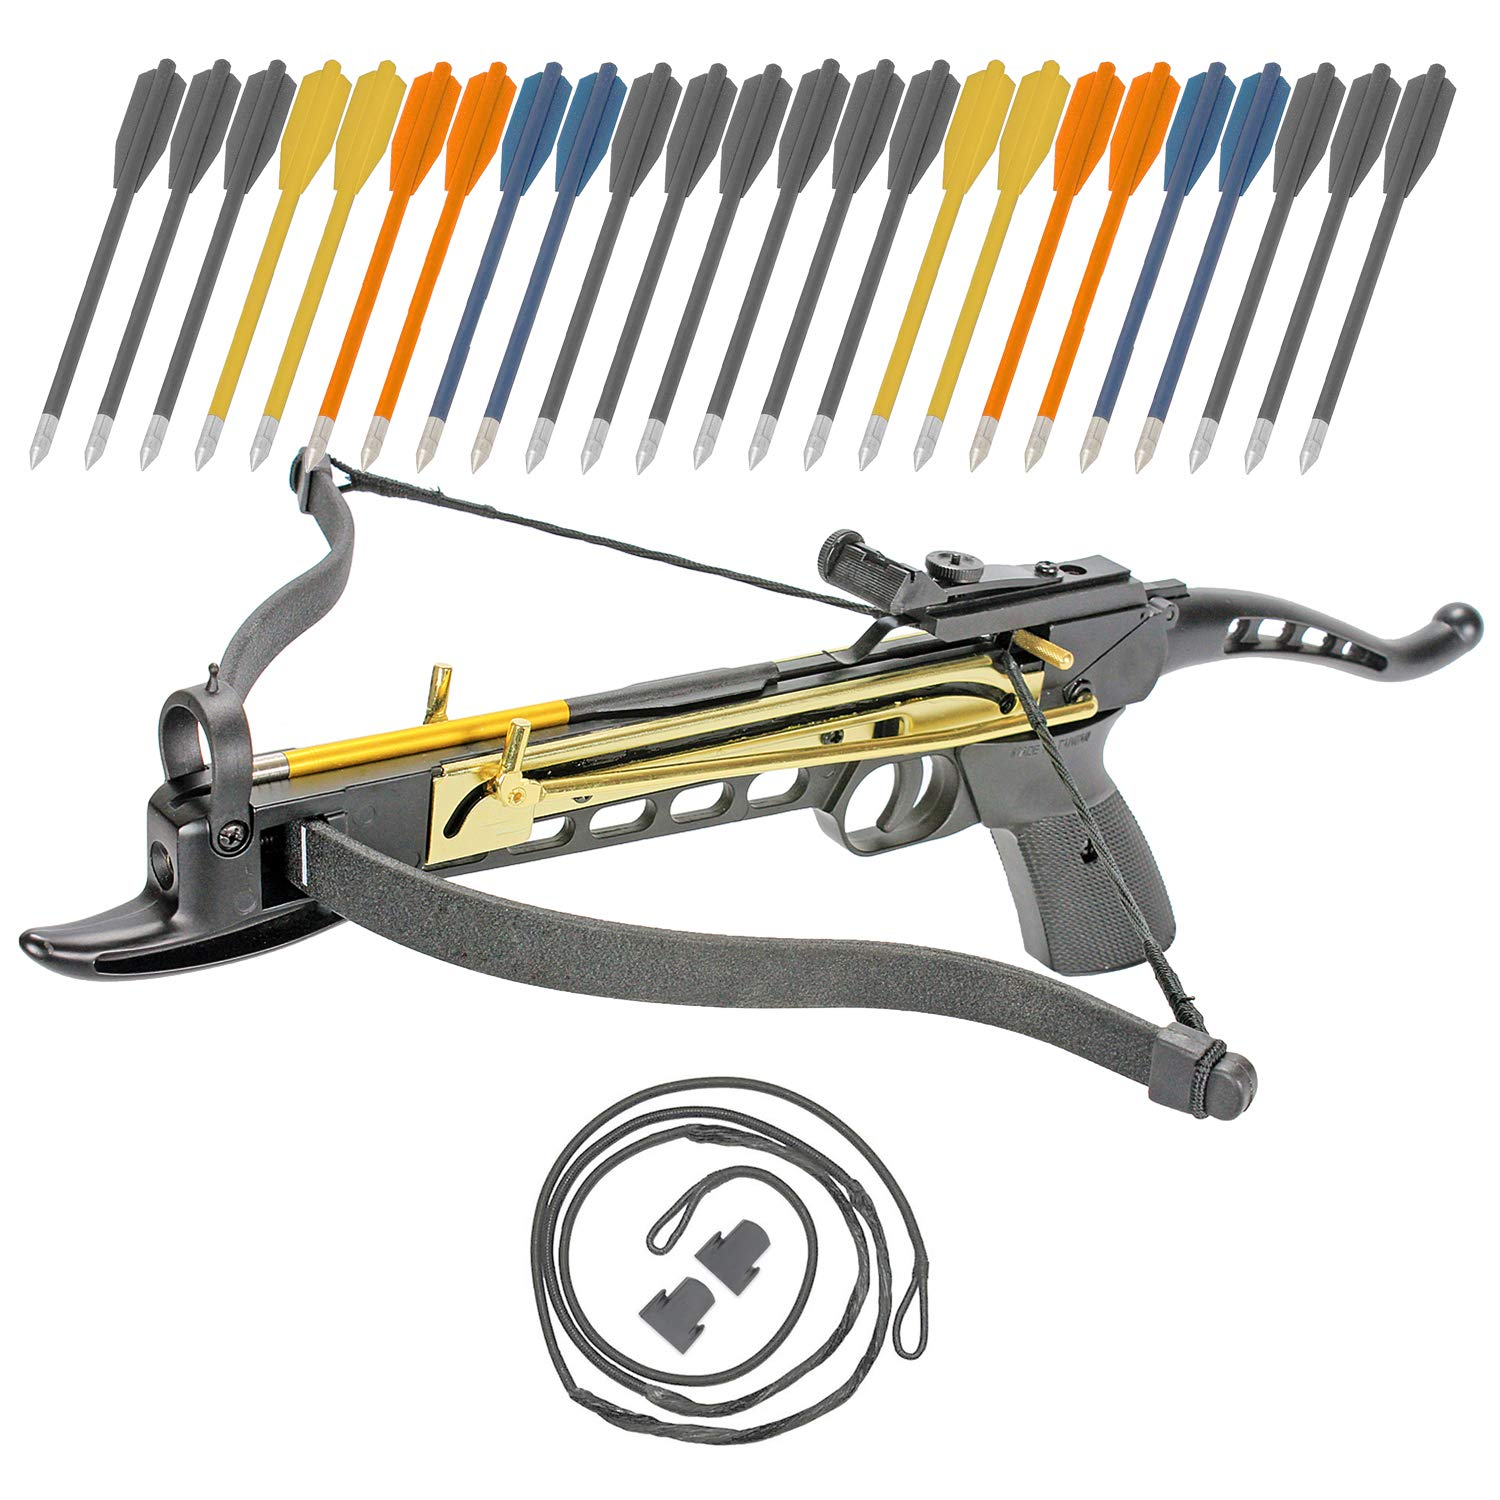 Crossbow Self-Cocking 80 LBS by KingsArchery® with Adjustable Sights, 3 Aluminium Arrow Bolts, Spare Crossbow String and Caps, and Bonus 24-pack of Colored PVC Arrow Bolts + KingsArchery® Warranty by KingsArchery